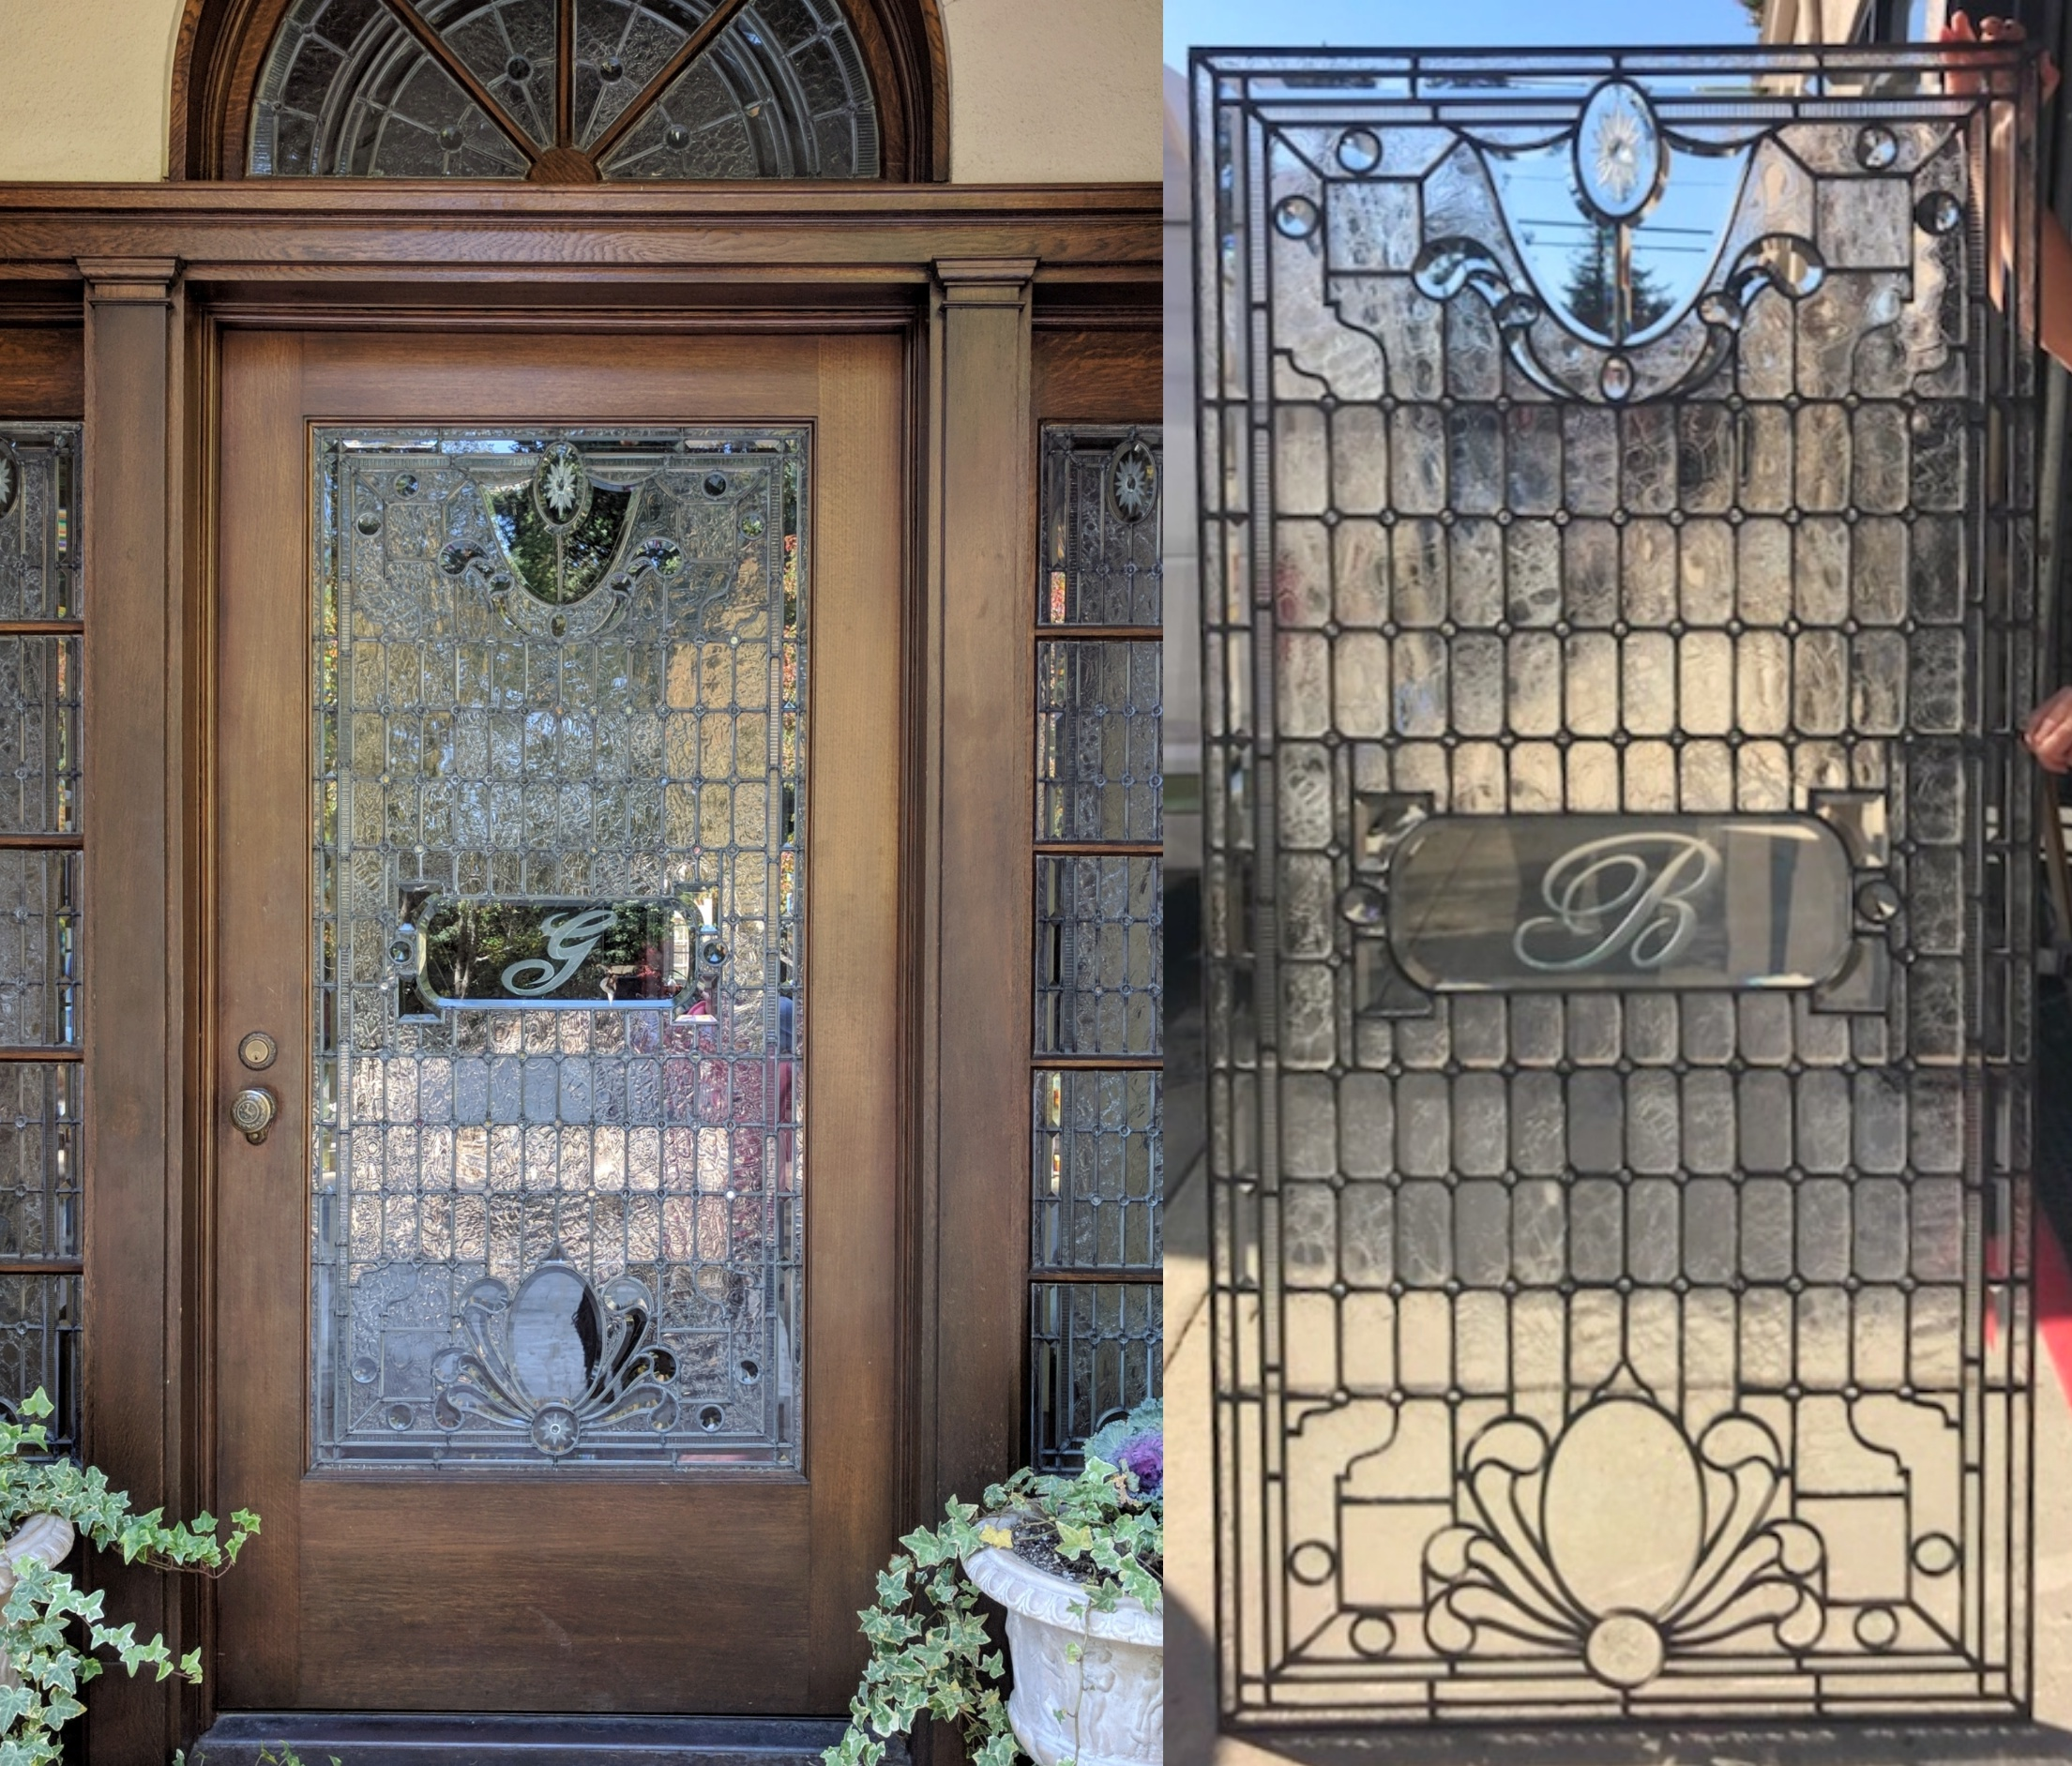 stained glass leaded glass repair beveled glass etched glass initial before and after.jpeg